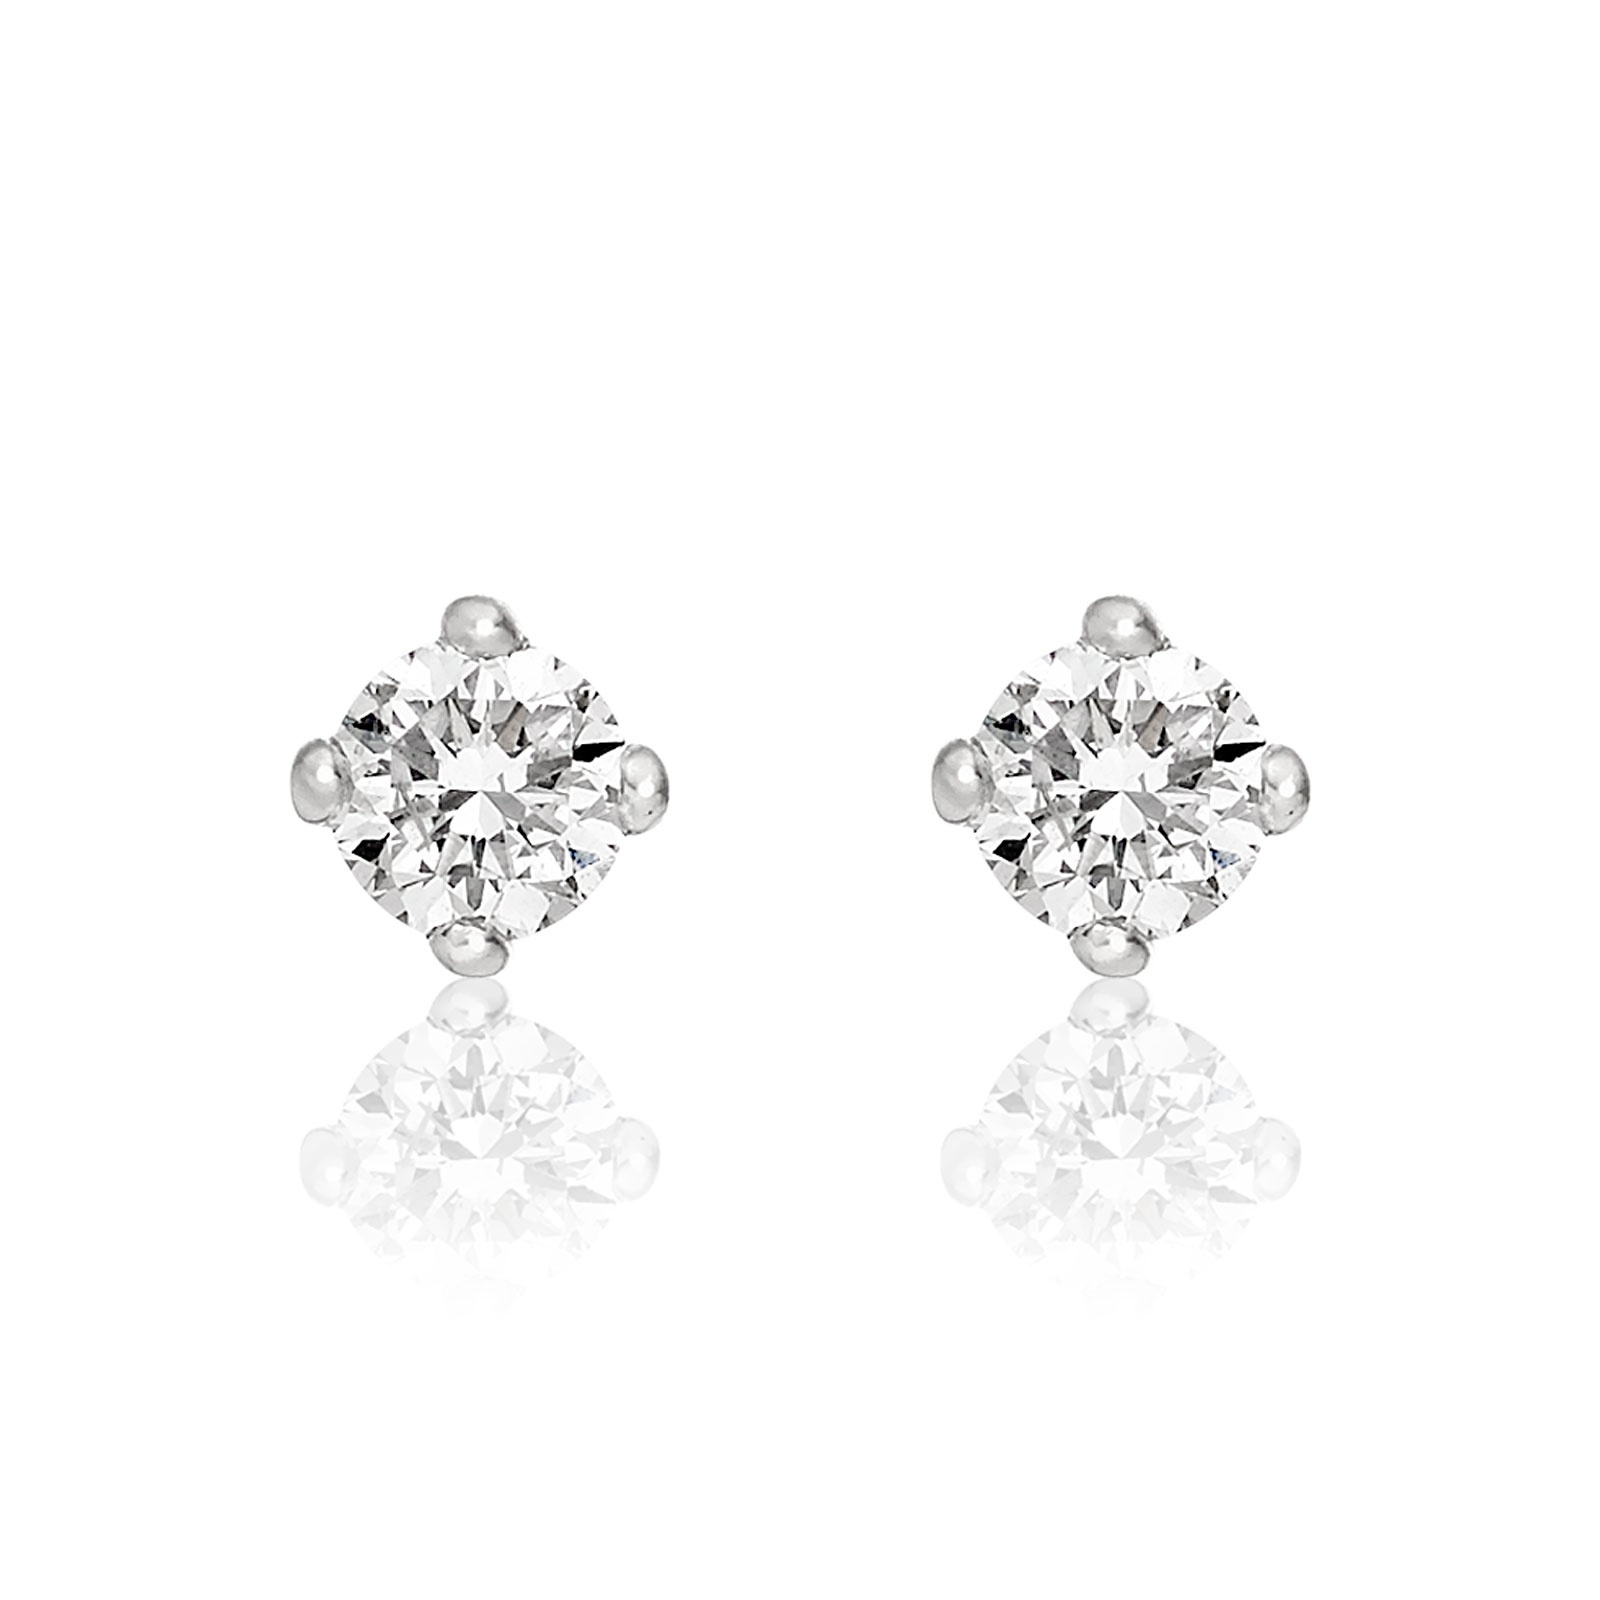 Diamond Studs in White Gold with White Freshwater Pearls-FEWDWG0489-1